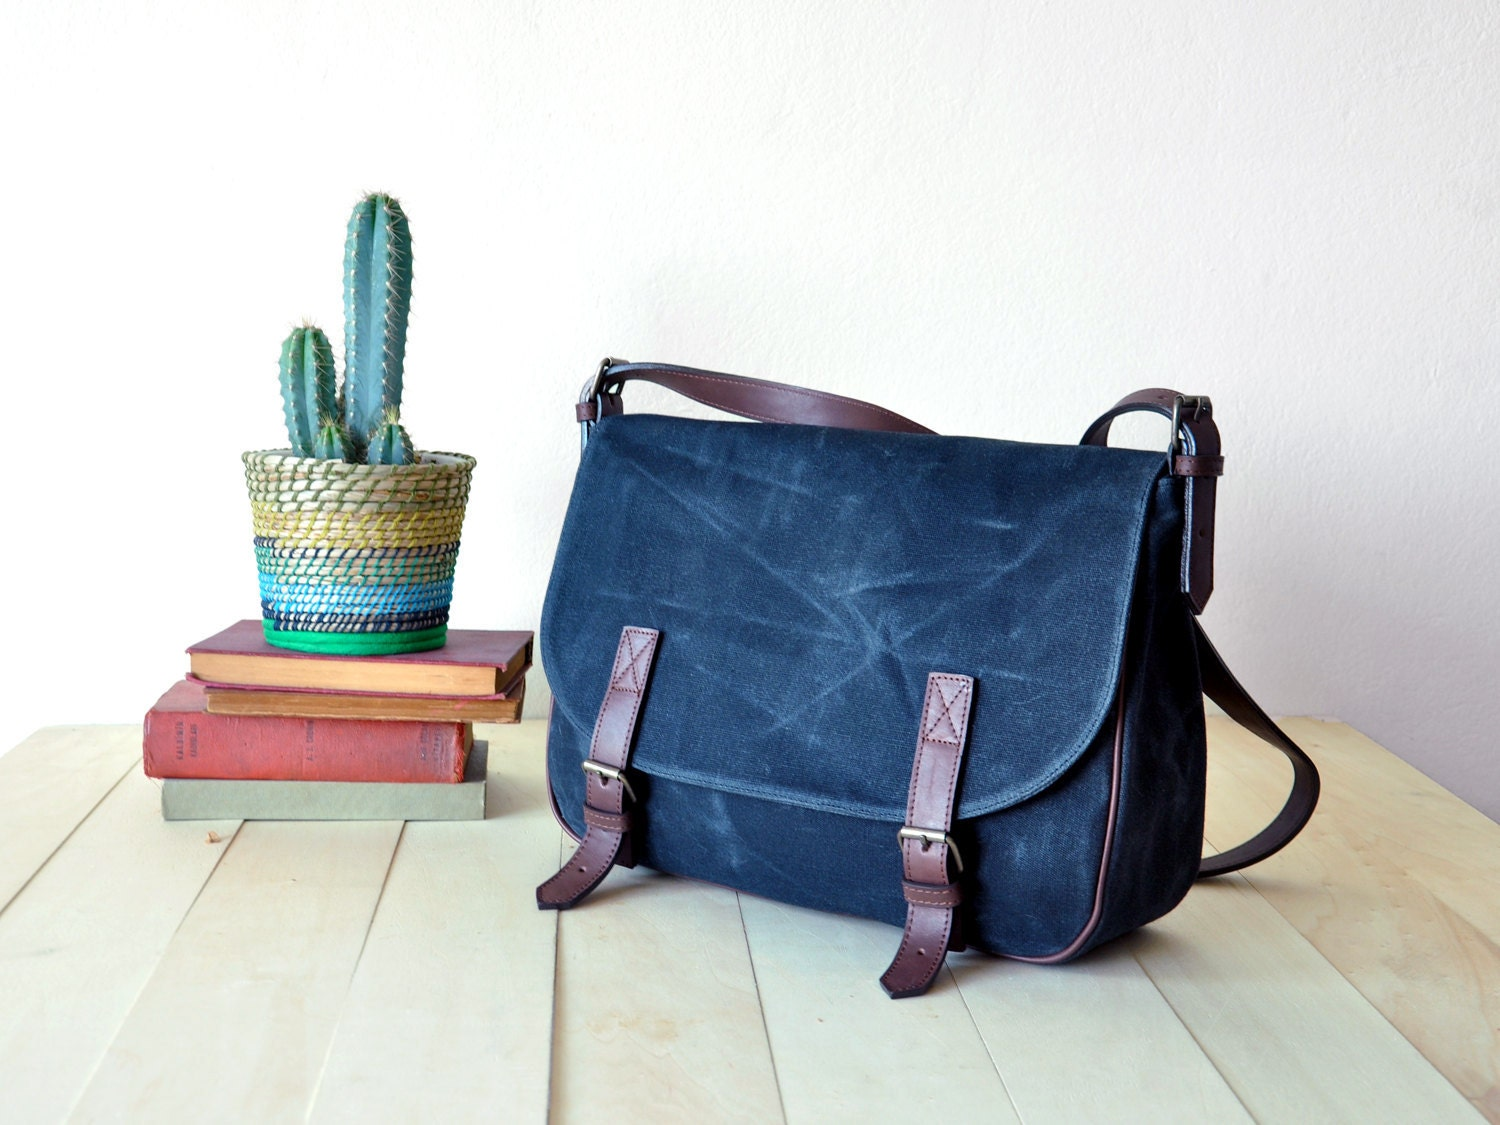 Waxed Canvas Messenger Bag in Olive Green Leather Strap